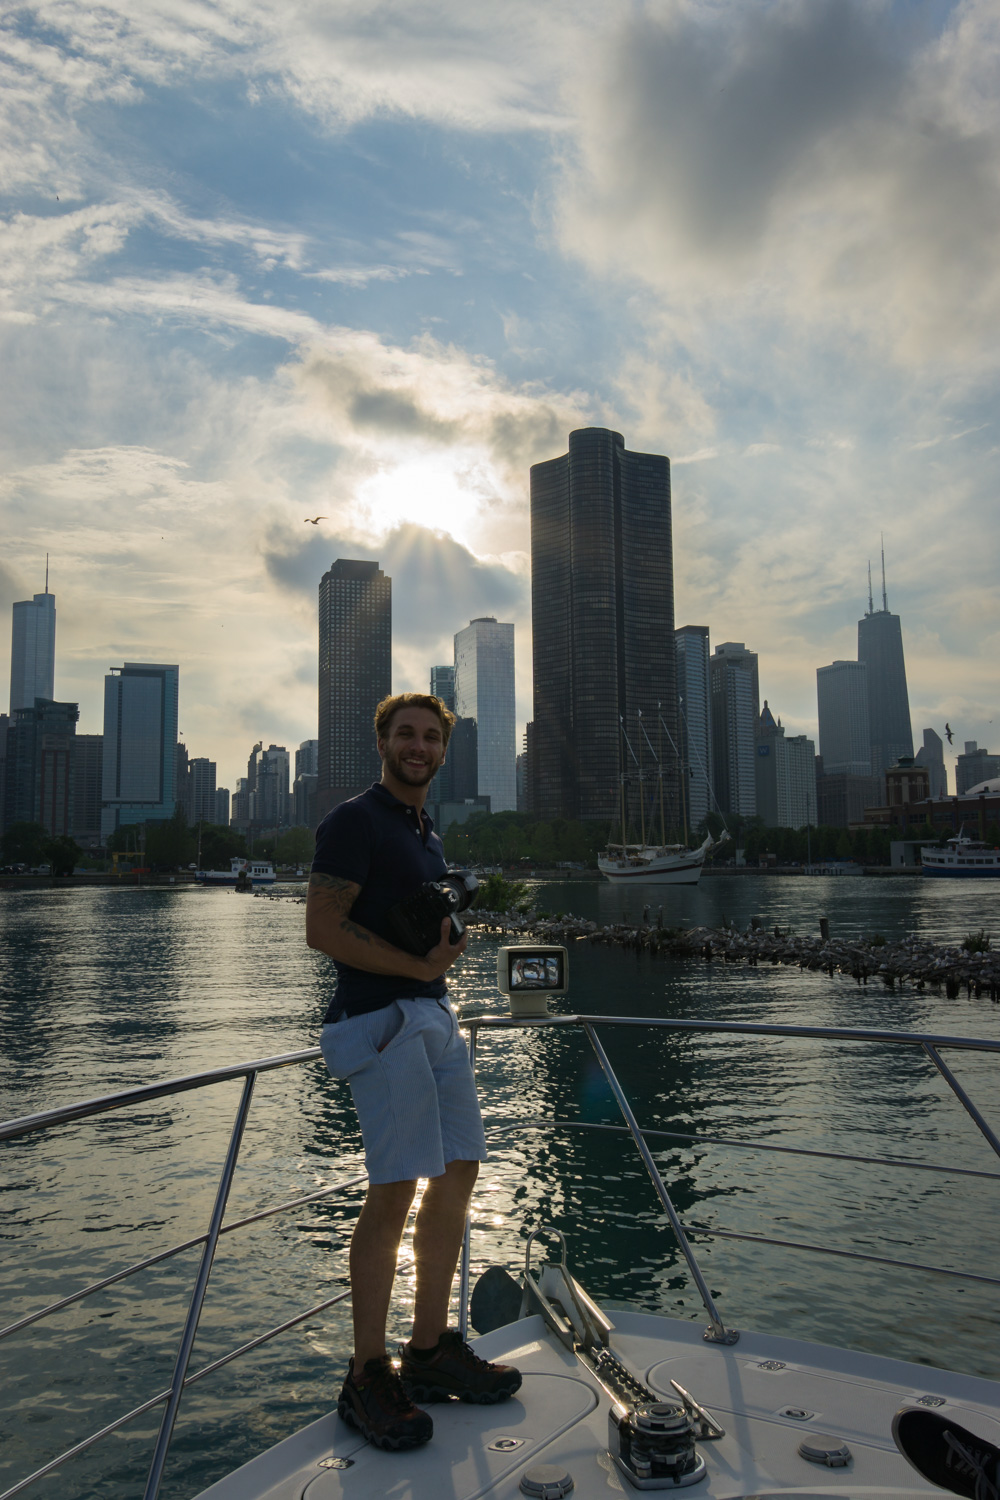 Ron Delhaye standing in front of the Chicago skyline